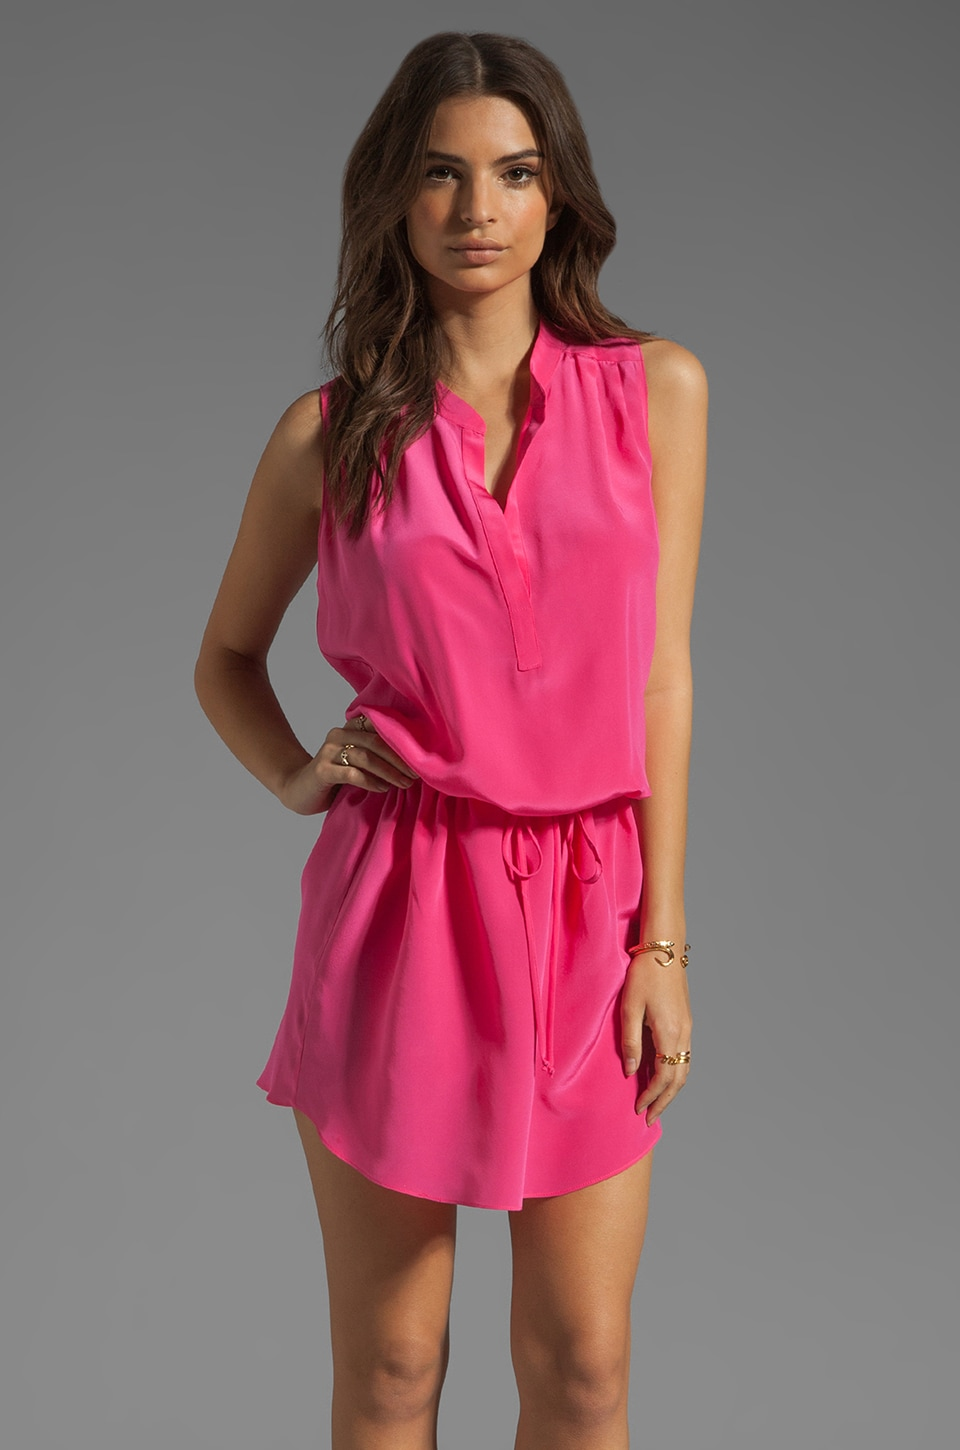 Rory Beca Mar Pleated Shoulder Dress in Cocktail